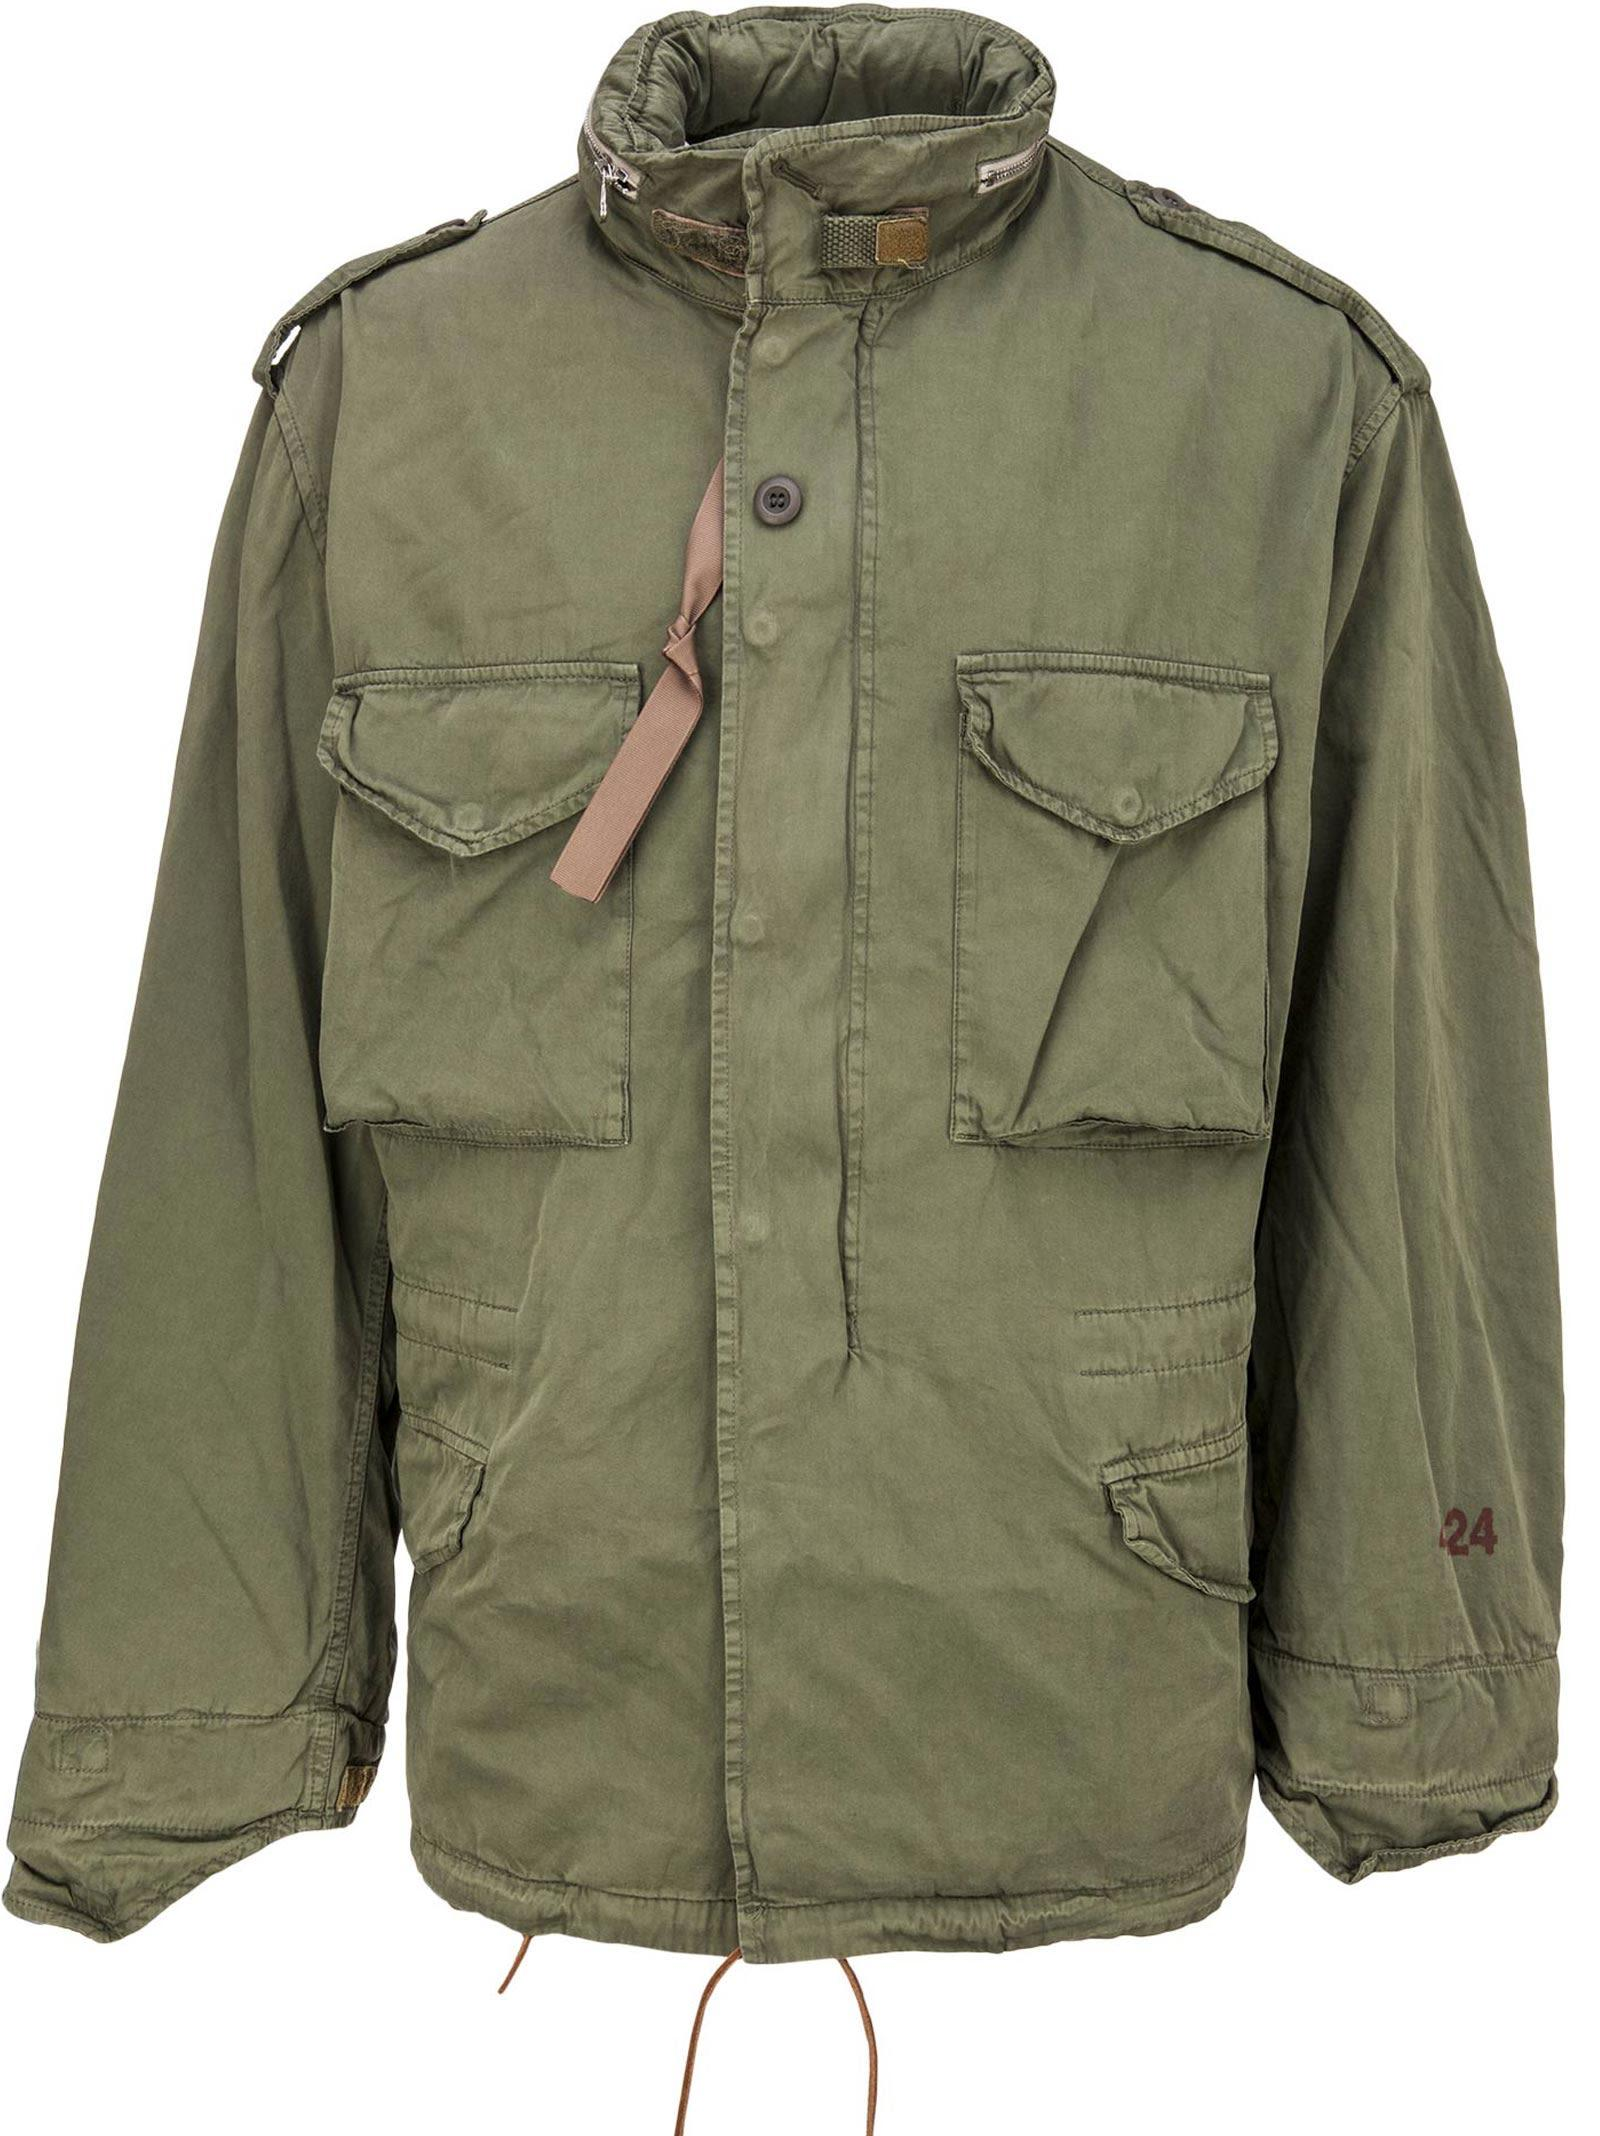 479a07d62 424 X Alpha X Slam Jam Jacket in Field